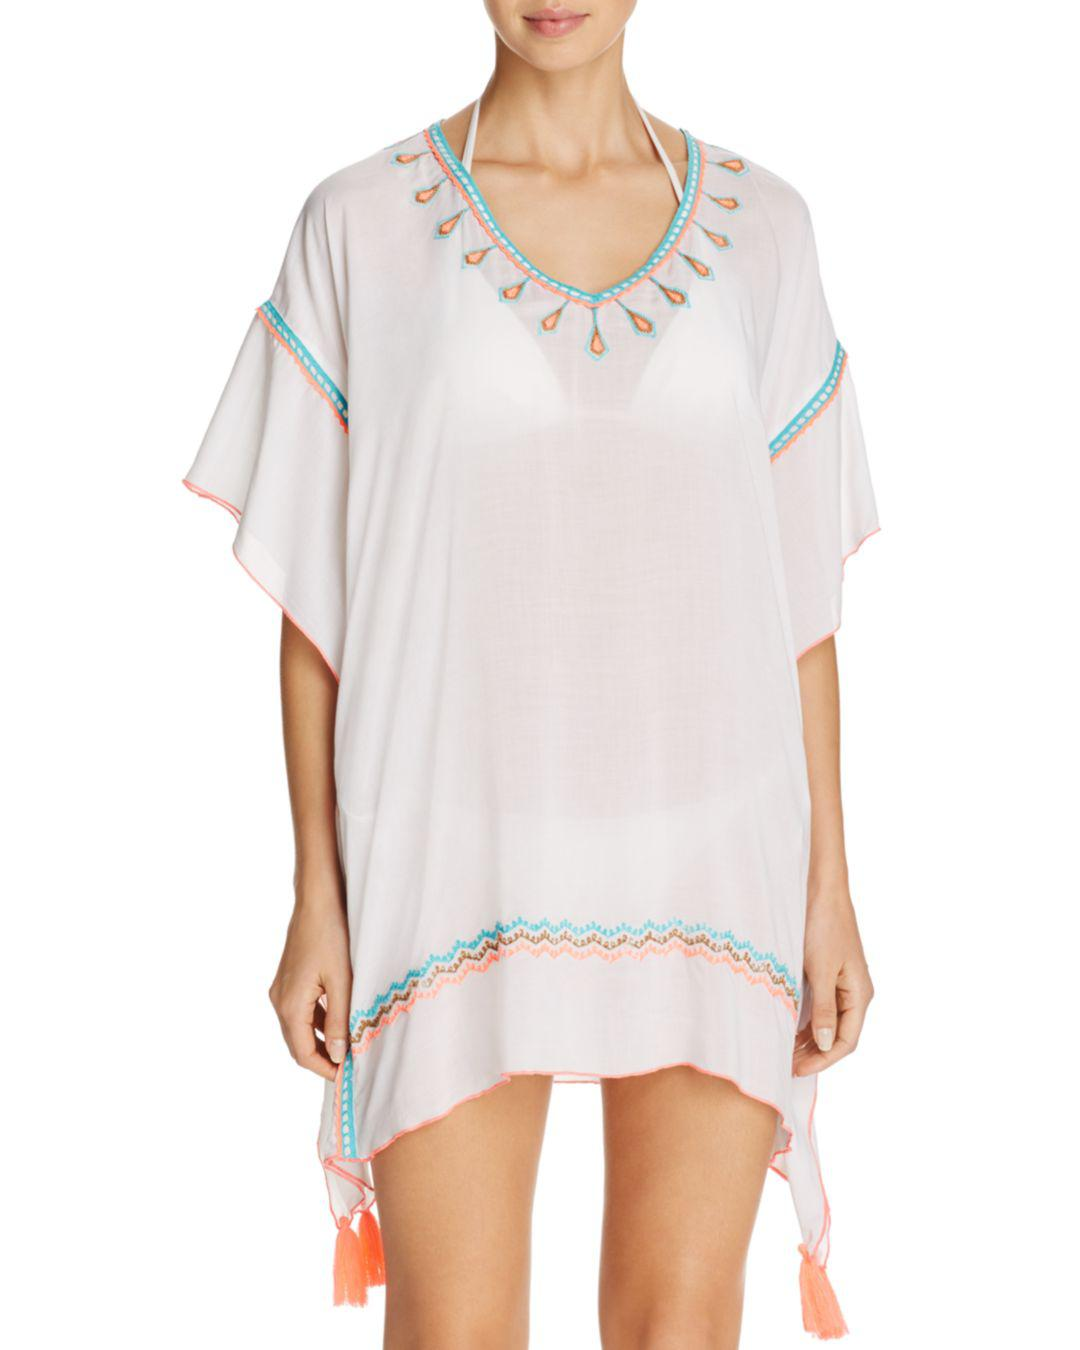 4f11739eaa26f Surf Gypsy Embroidered Poncho Swim Cover-up in White - Lyst